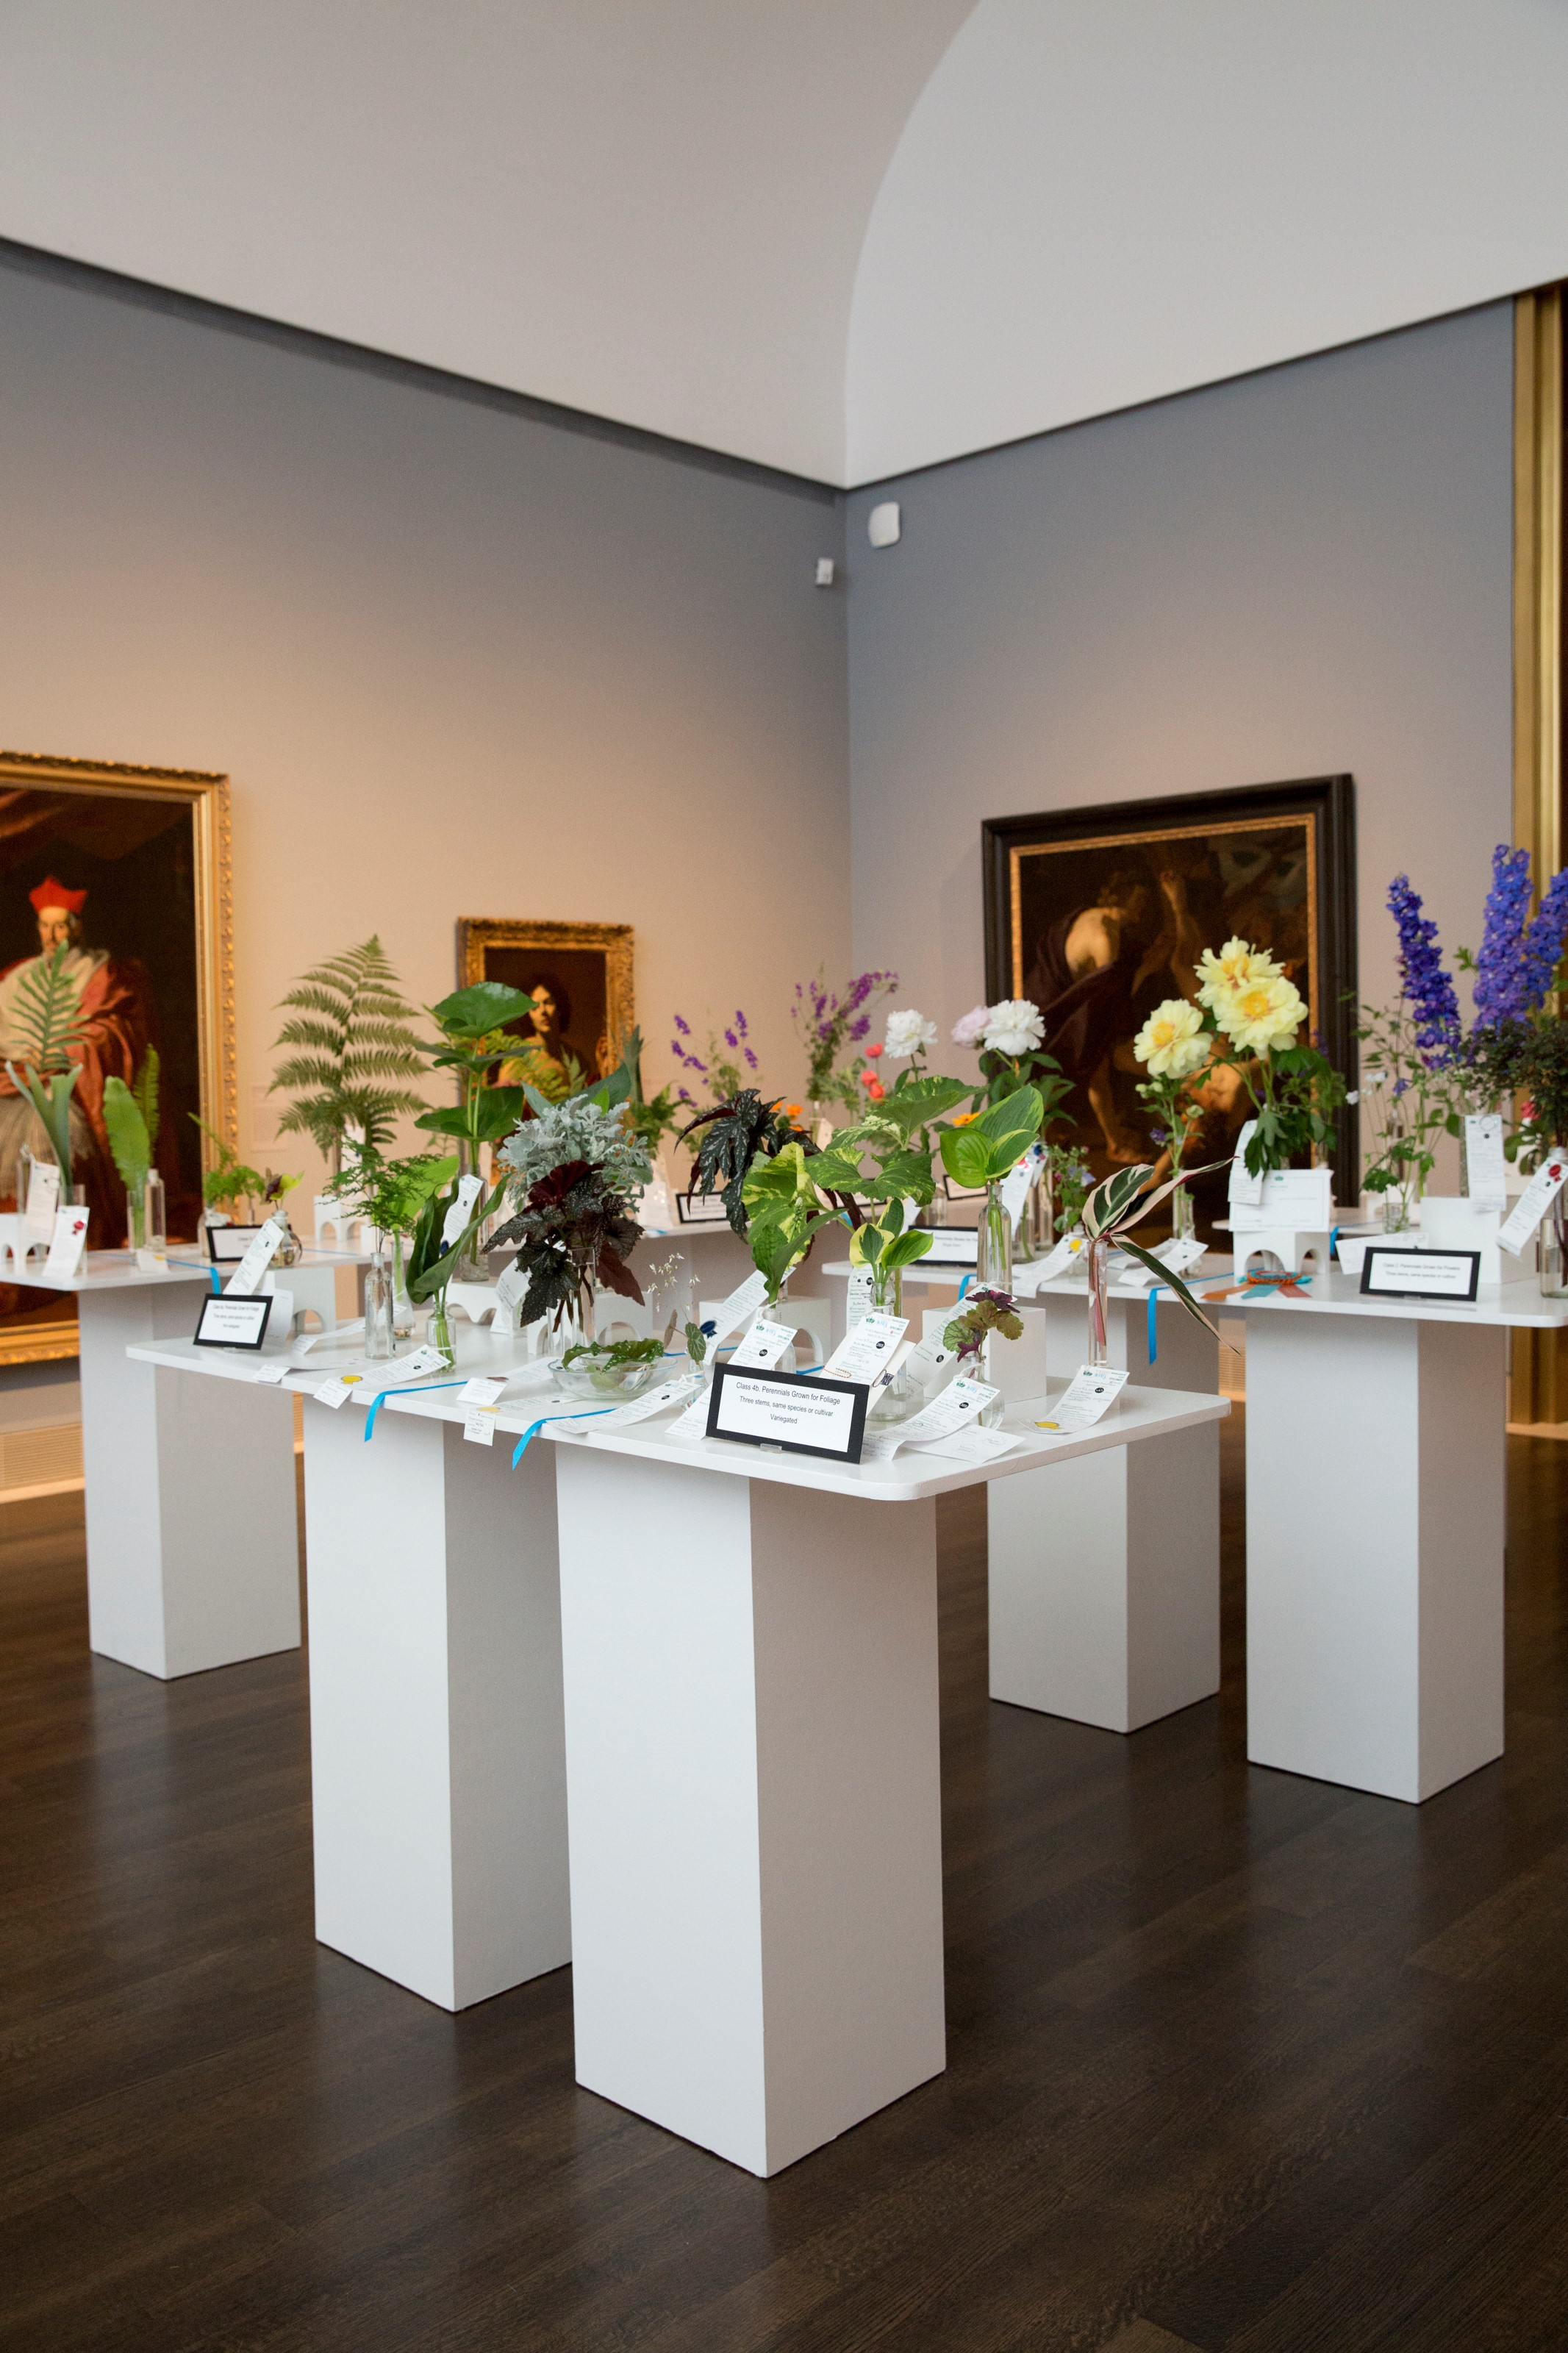 Florescence 2017 - flowers in the galleries